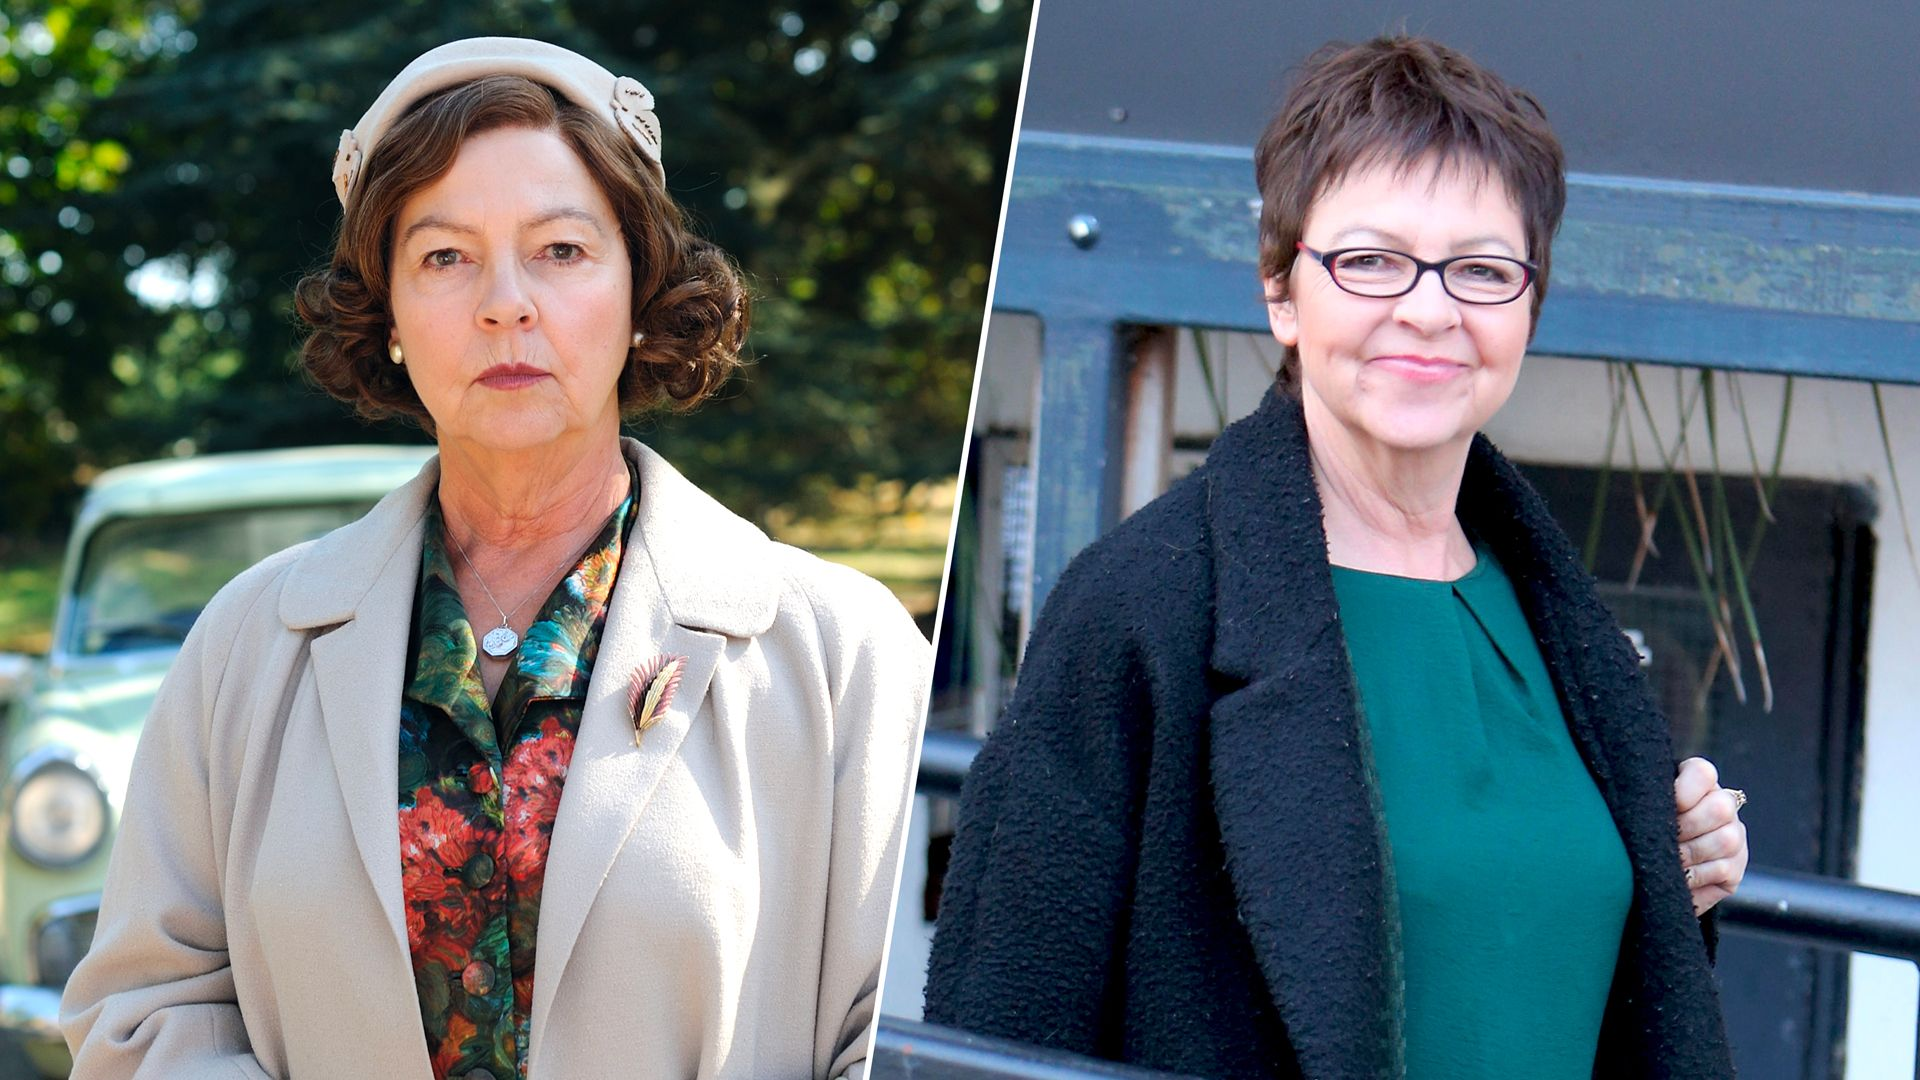 Tessa Peake-Jones as Mrs. C in Grantchester on MASTERPIECE PBS